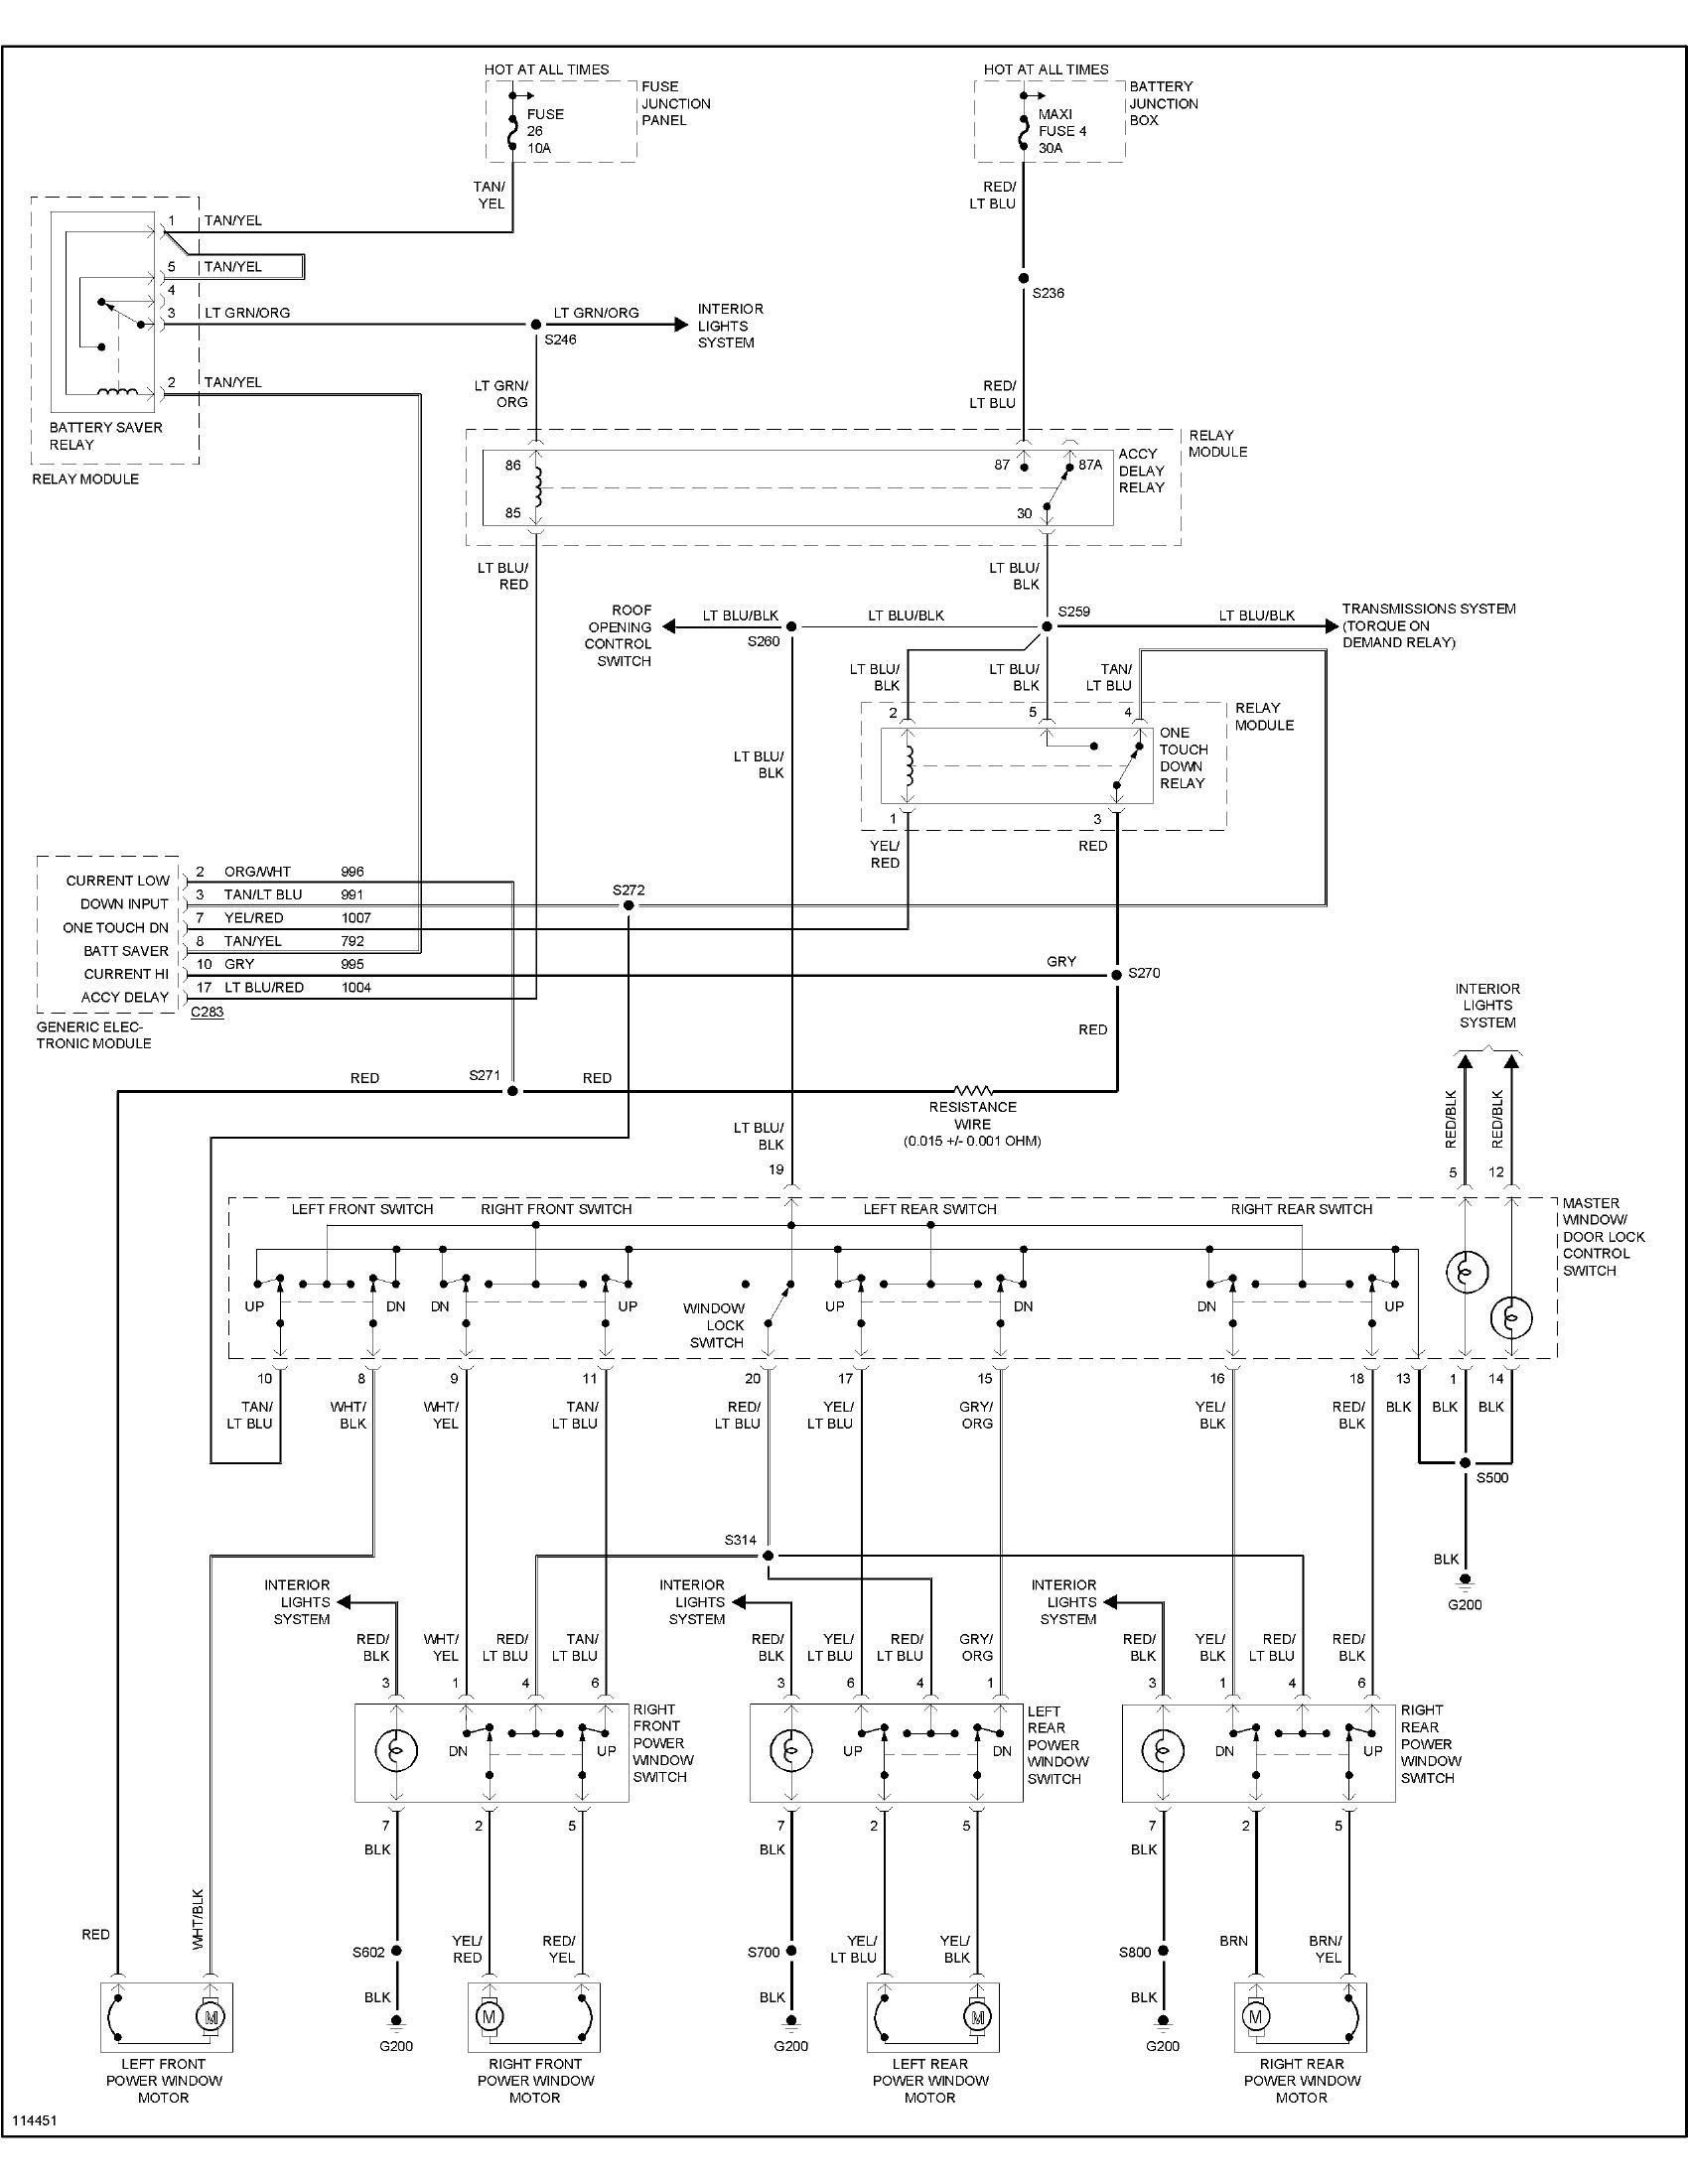 98 ford Ranger Engine Diagram 6c19afb where is the Fuse Box In My ford Explorer Of 98 ford Ranger Engine Diagram